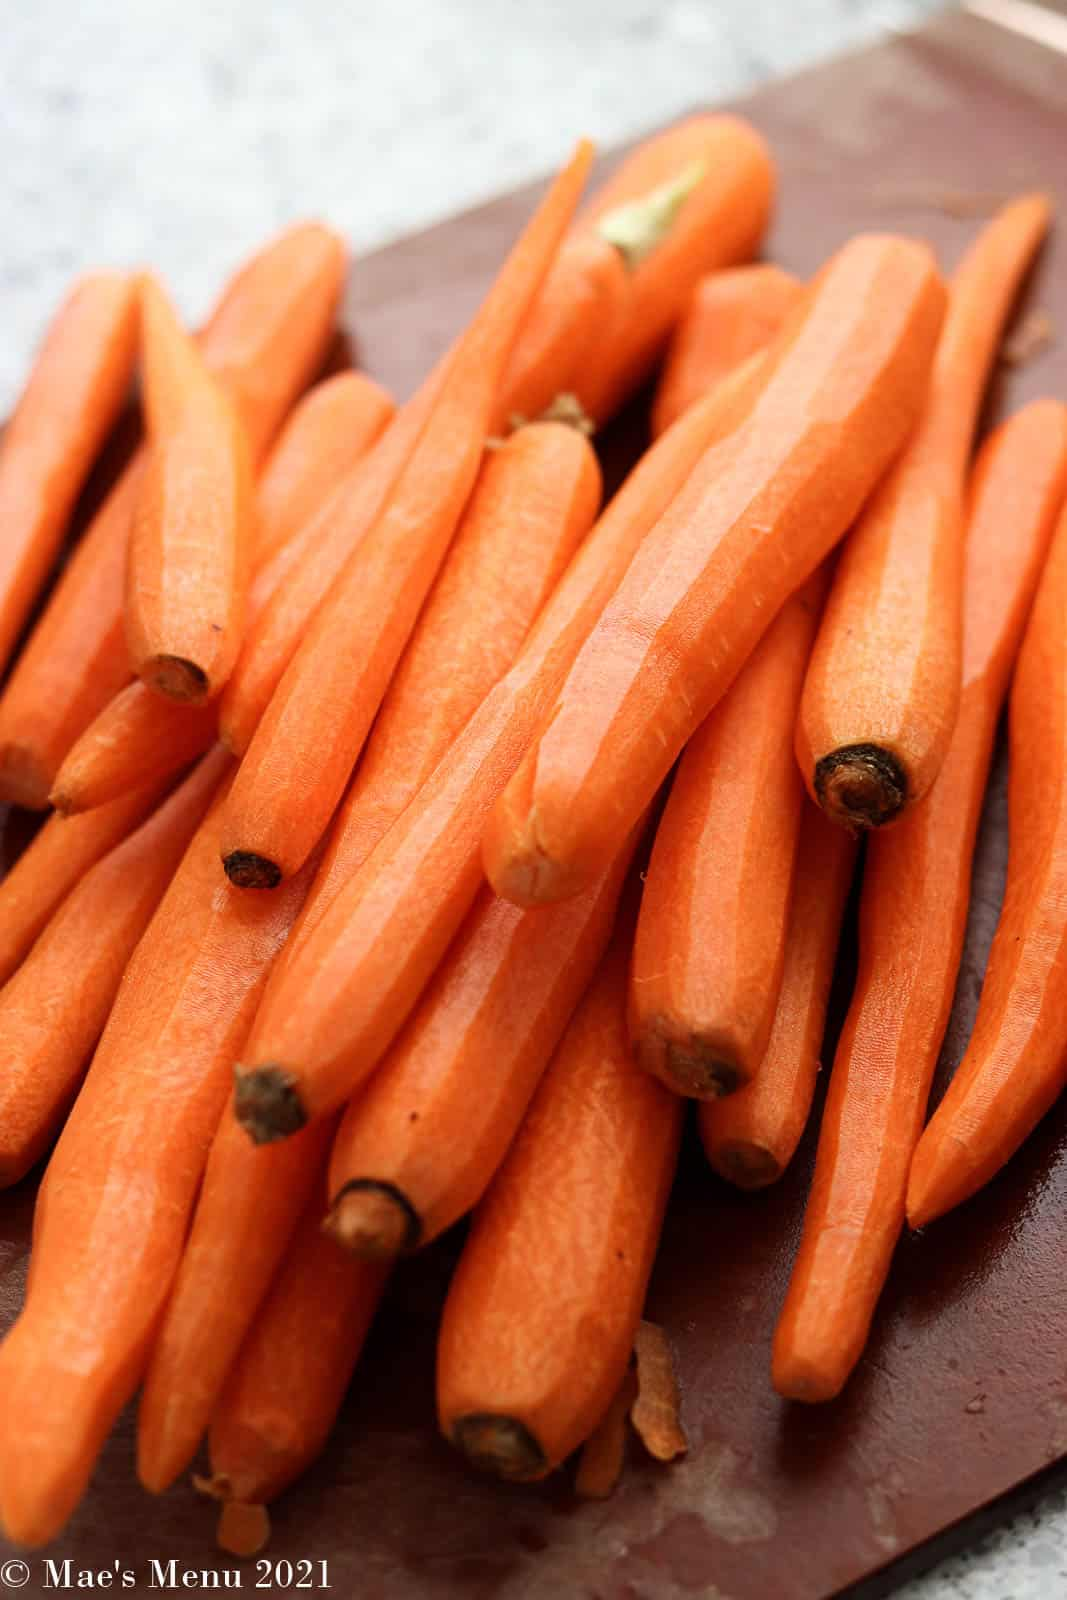 a pile of carrots on a cutting board